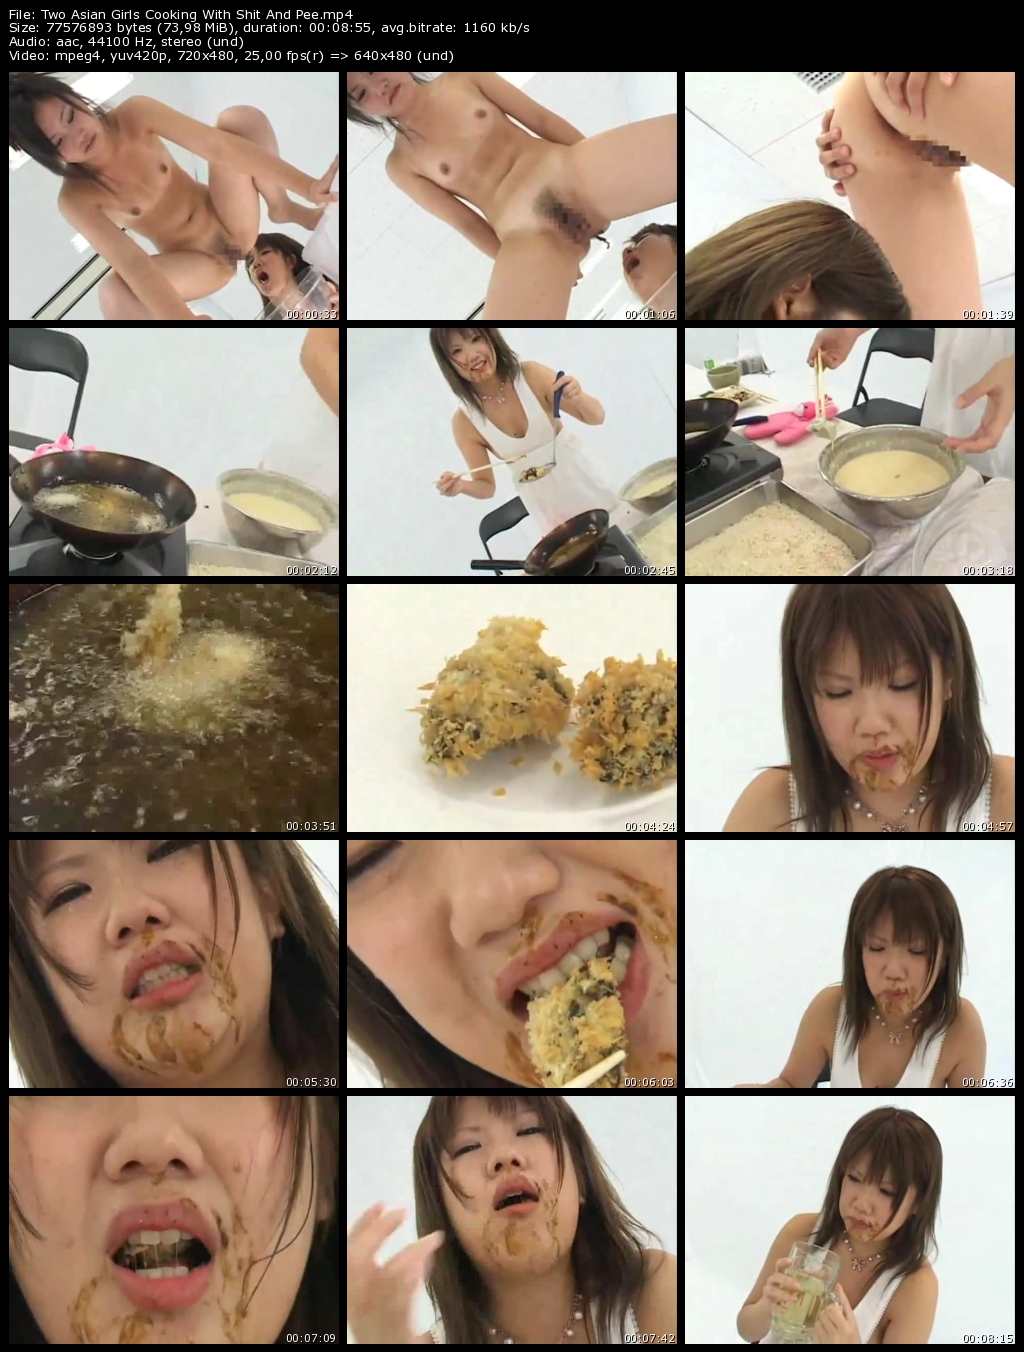 Two Asian Girls Cooking With Shit And Pee - Lesbo Scat Action